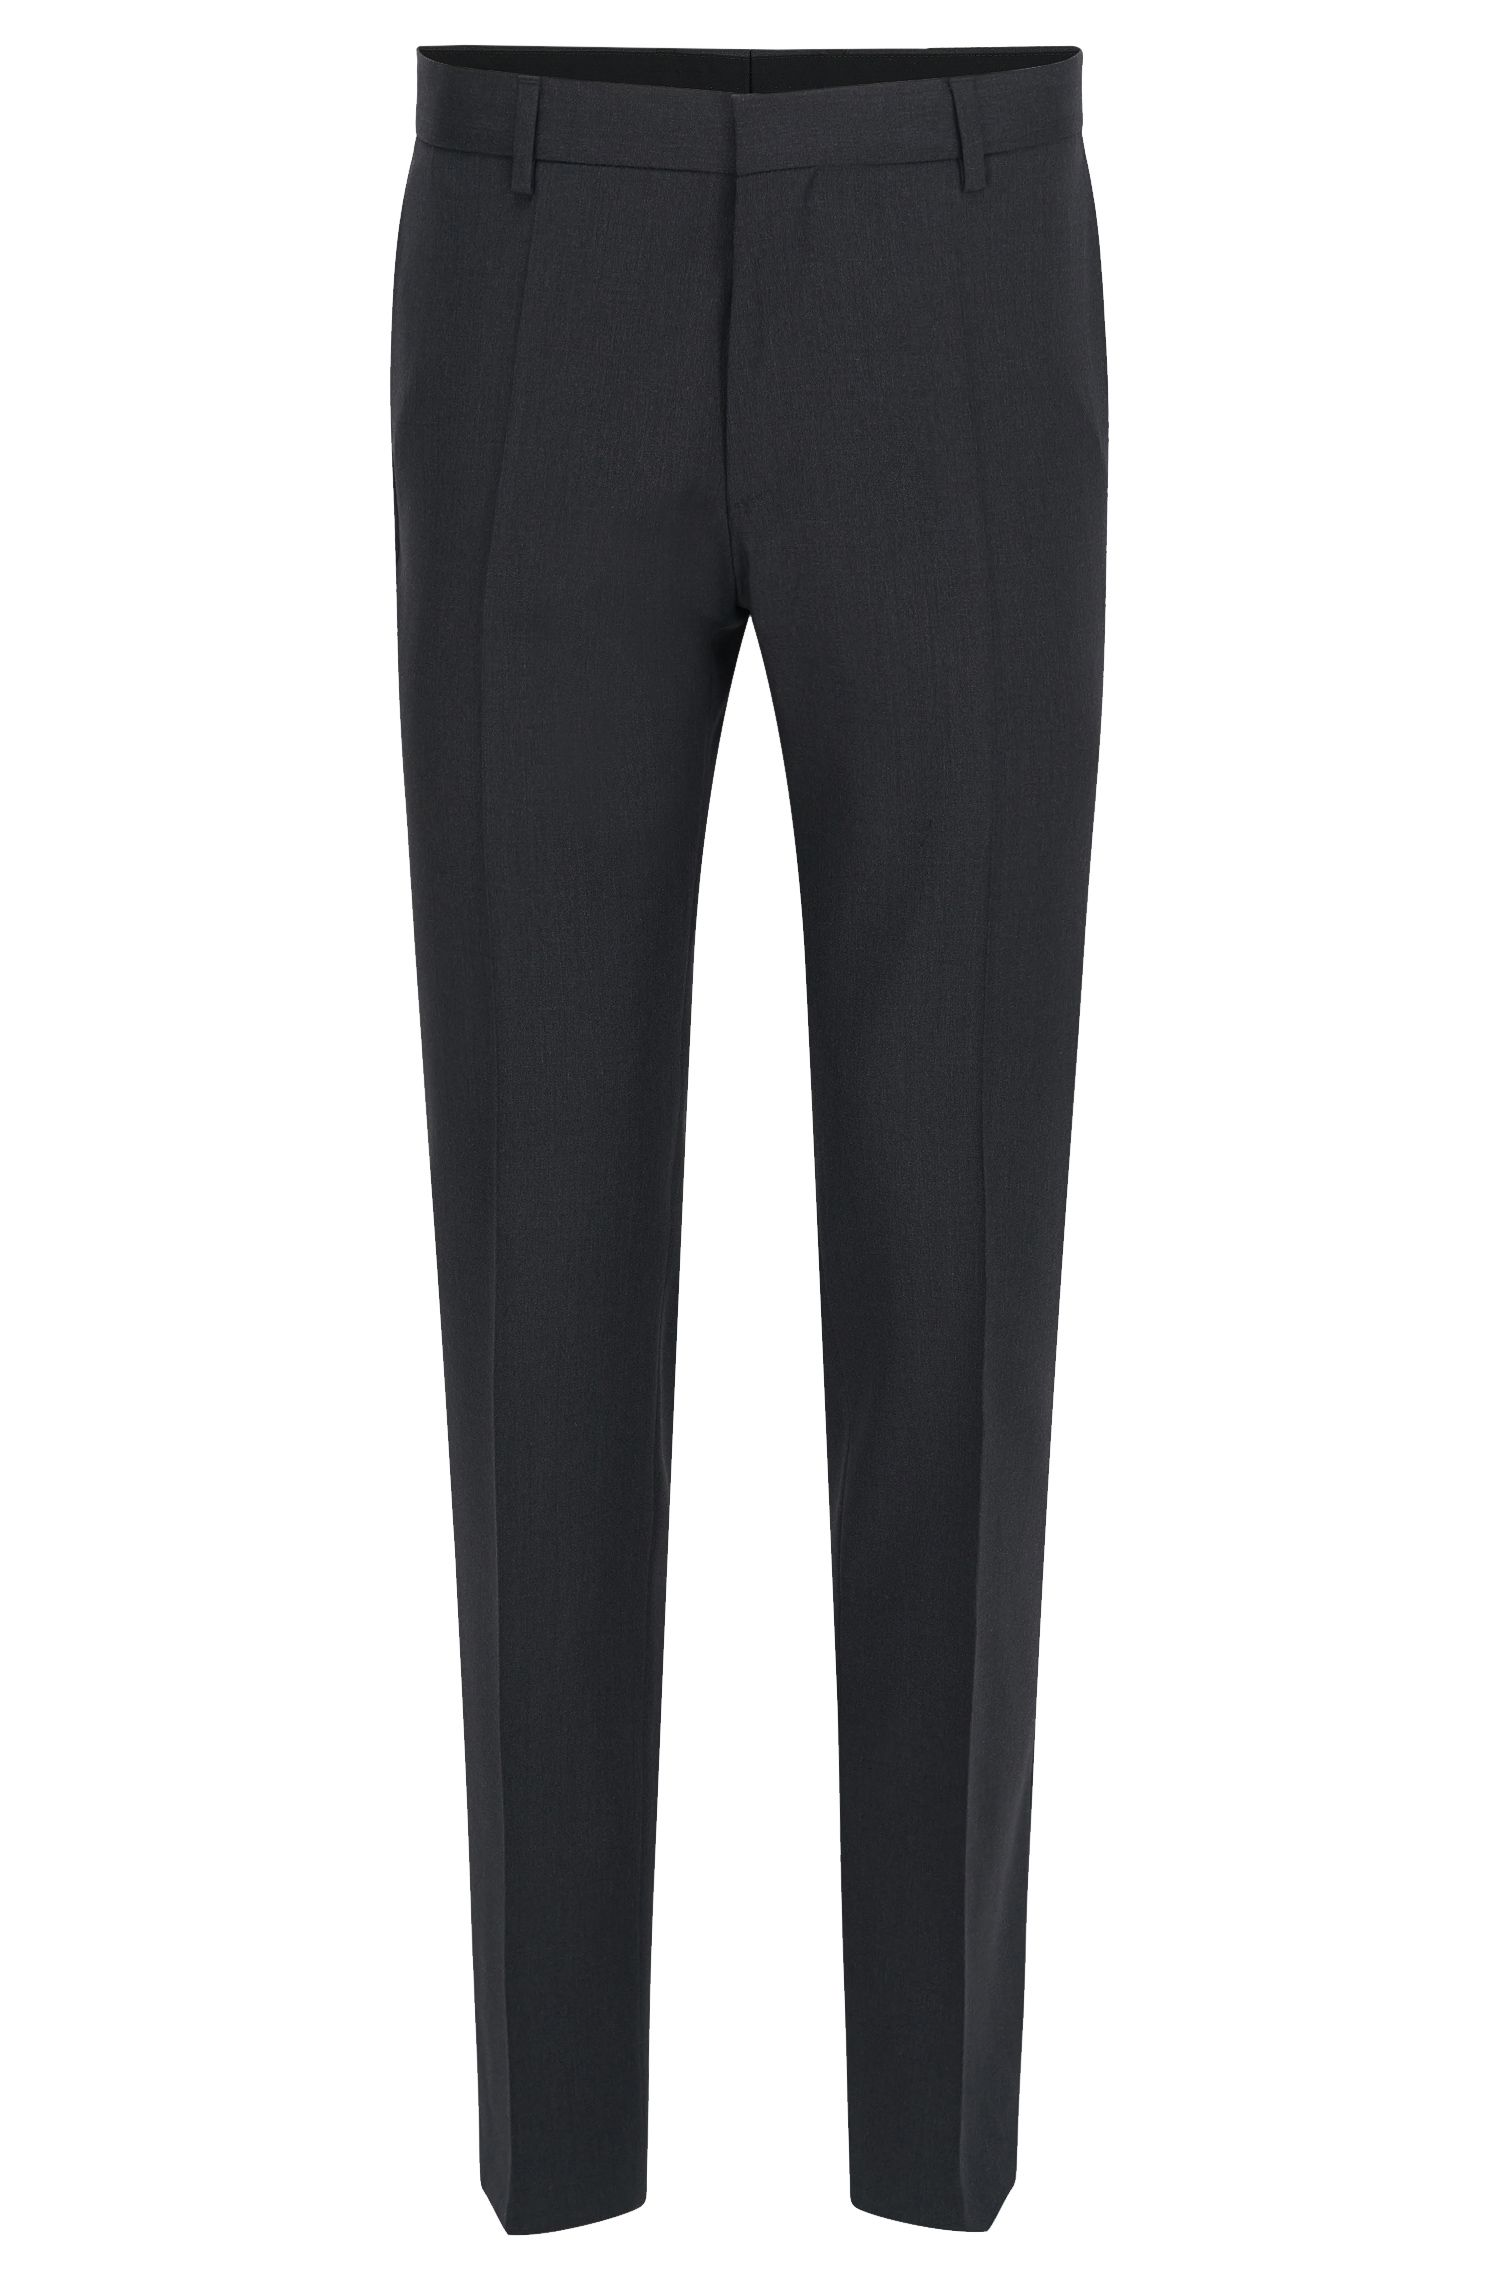 Virgin Wool Dress Pants, Slim Fit | Gibson CYL, Dark Grey